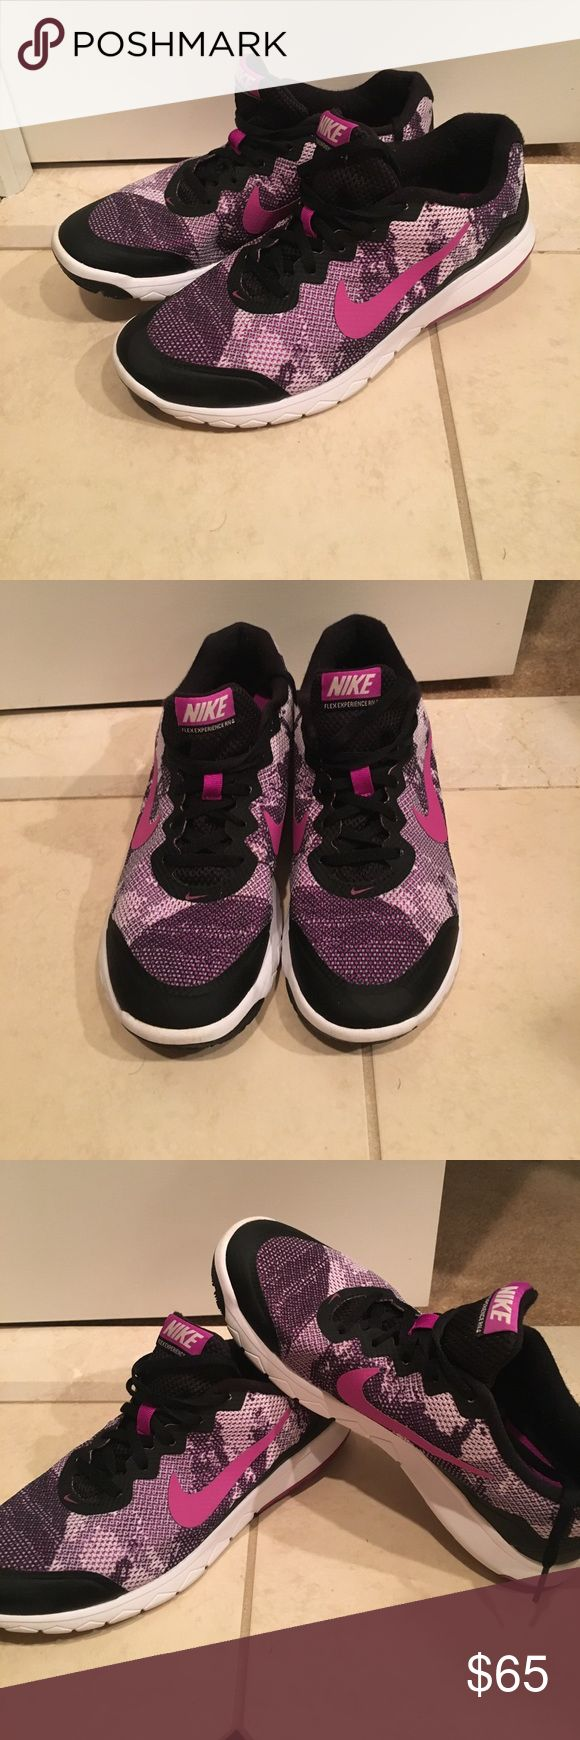 Nike Flex Experience RN 4 - Like New Light Wear! Shoes are in really good condition! Very comfortable to walk, jog and run in! Purple and Black! Nike Shoes Athletic Shoes